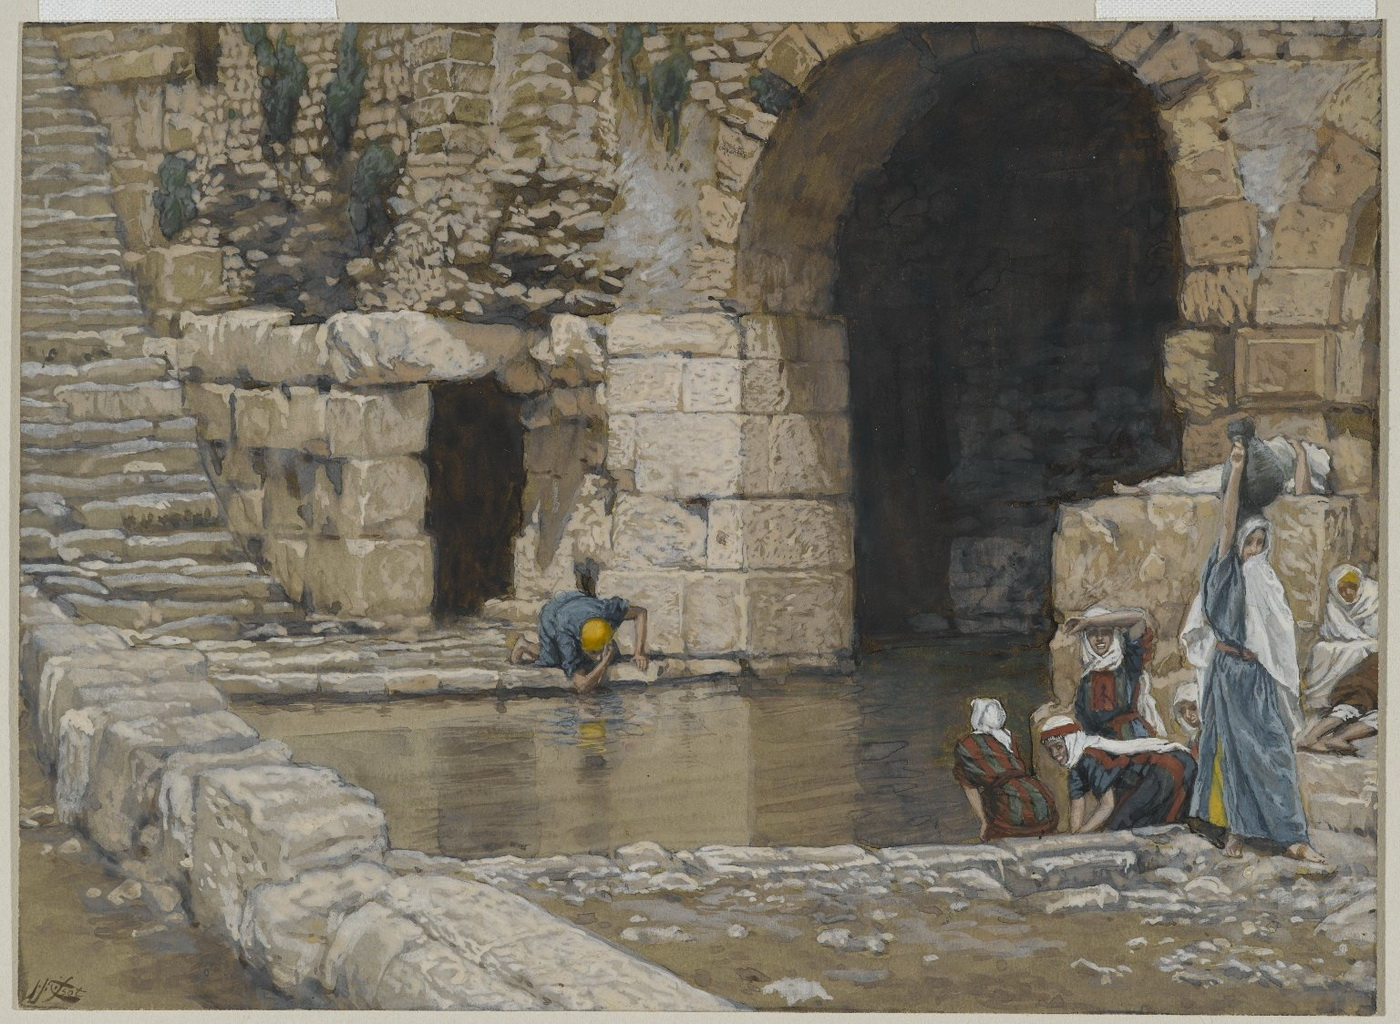 Brooklyn Museum - The Blind Man Washes in the Pool of Siloam 2-1400